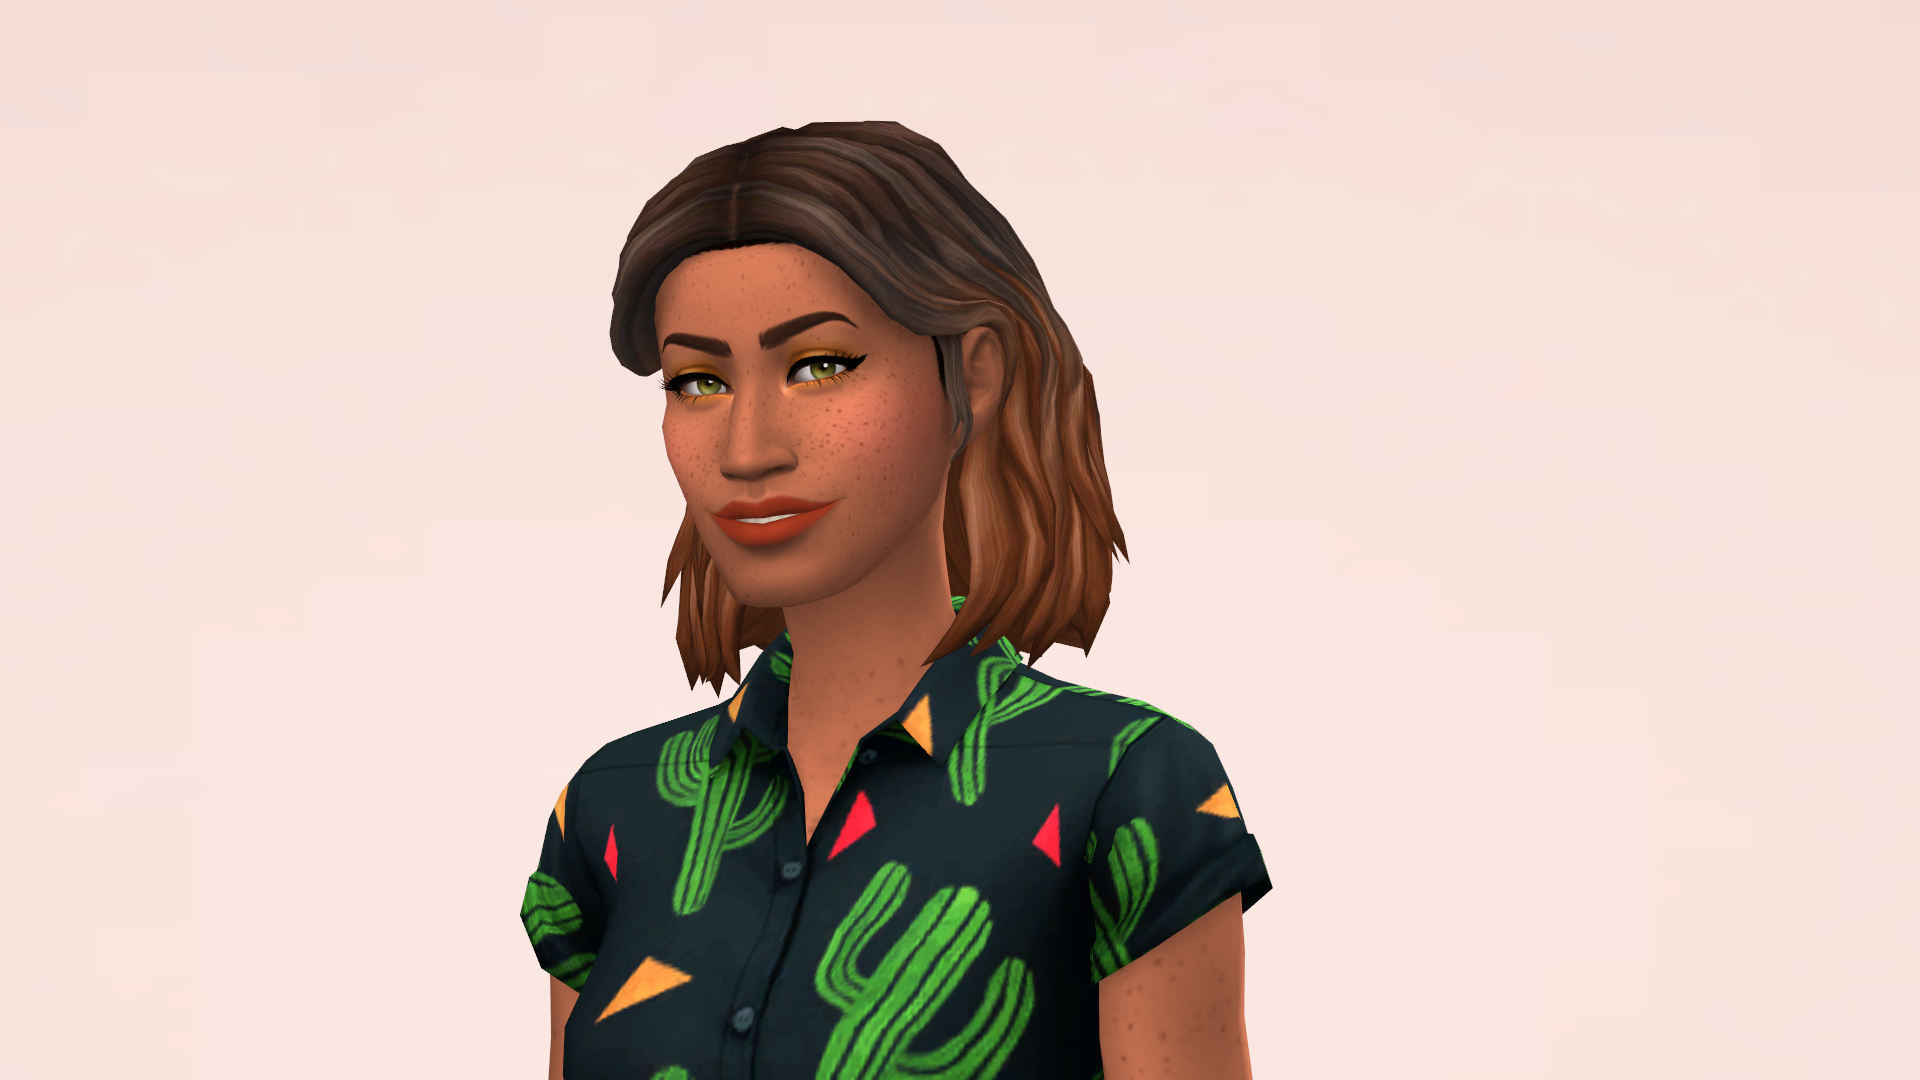 The Most Essential Sims 4 Mods For Eyes, Skin, And Hair